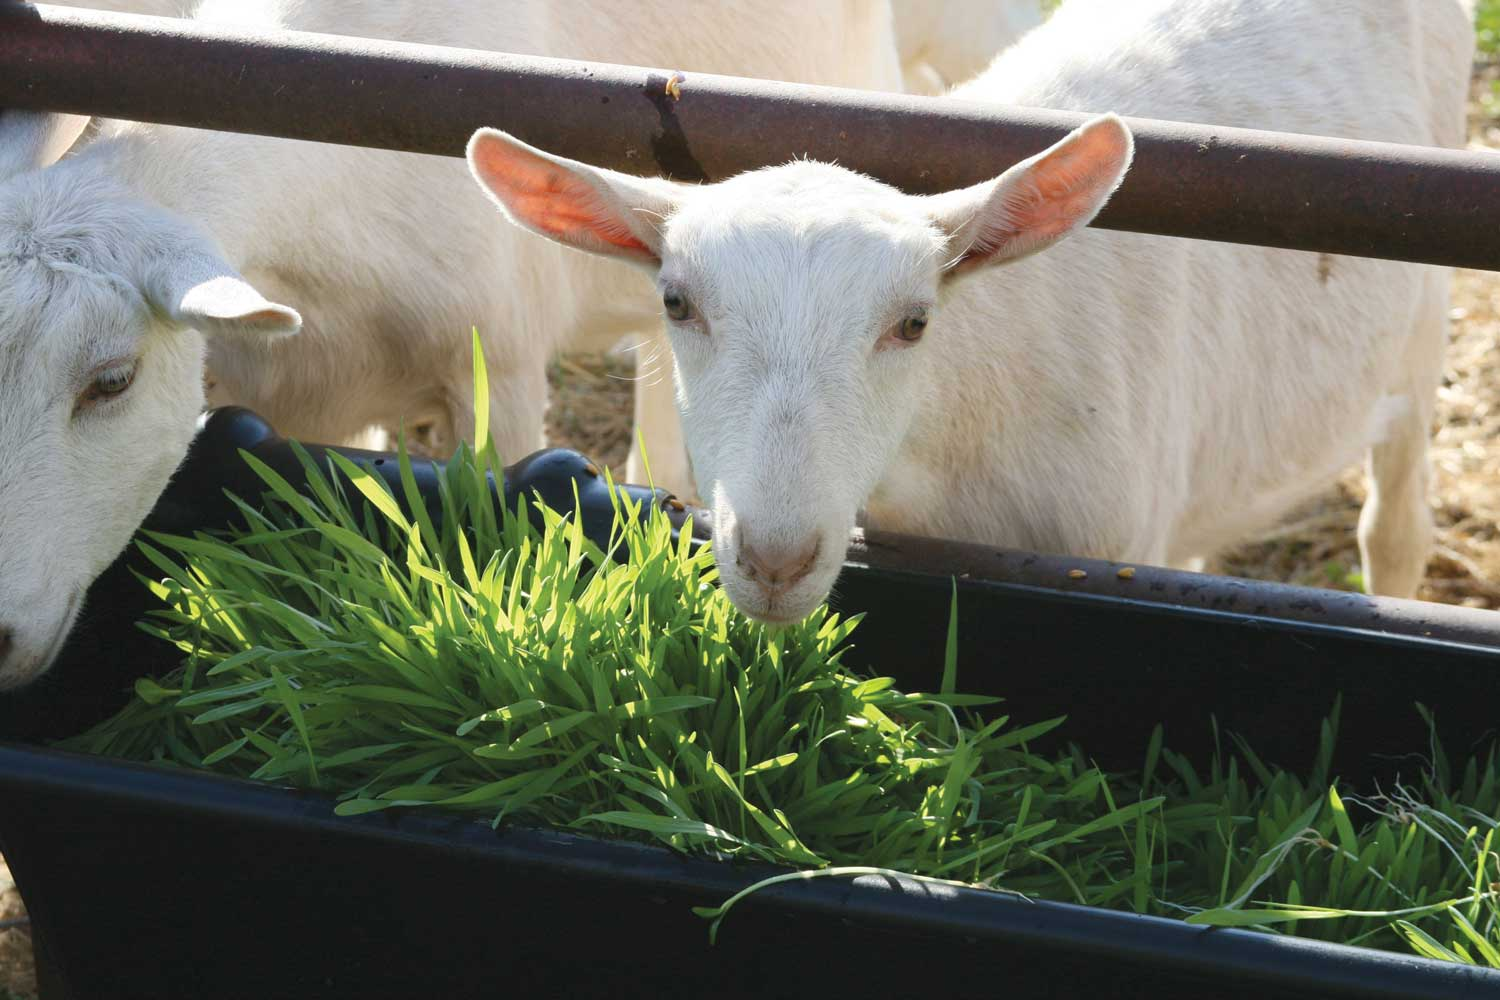 Goats Benefits - Fodder Systems - Healthy, fresh feed every day